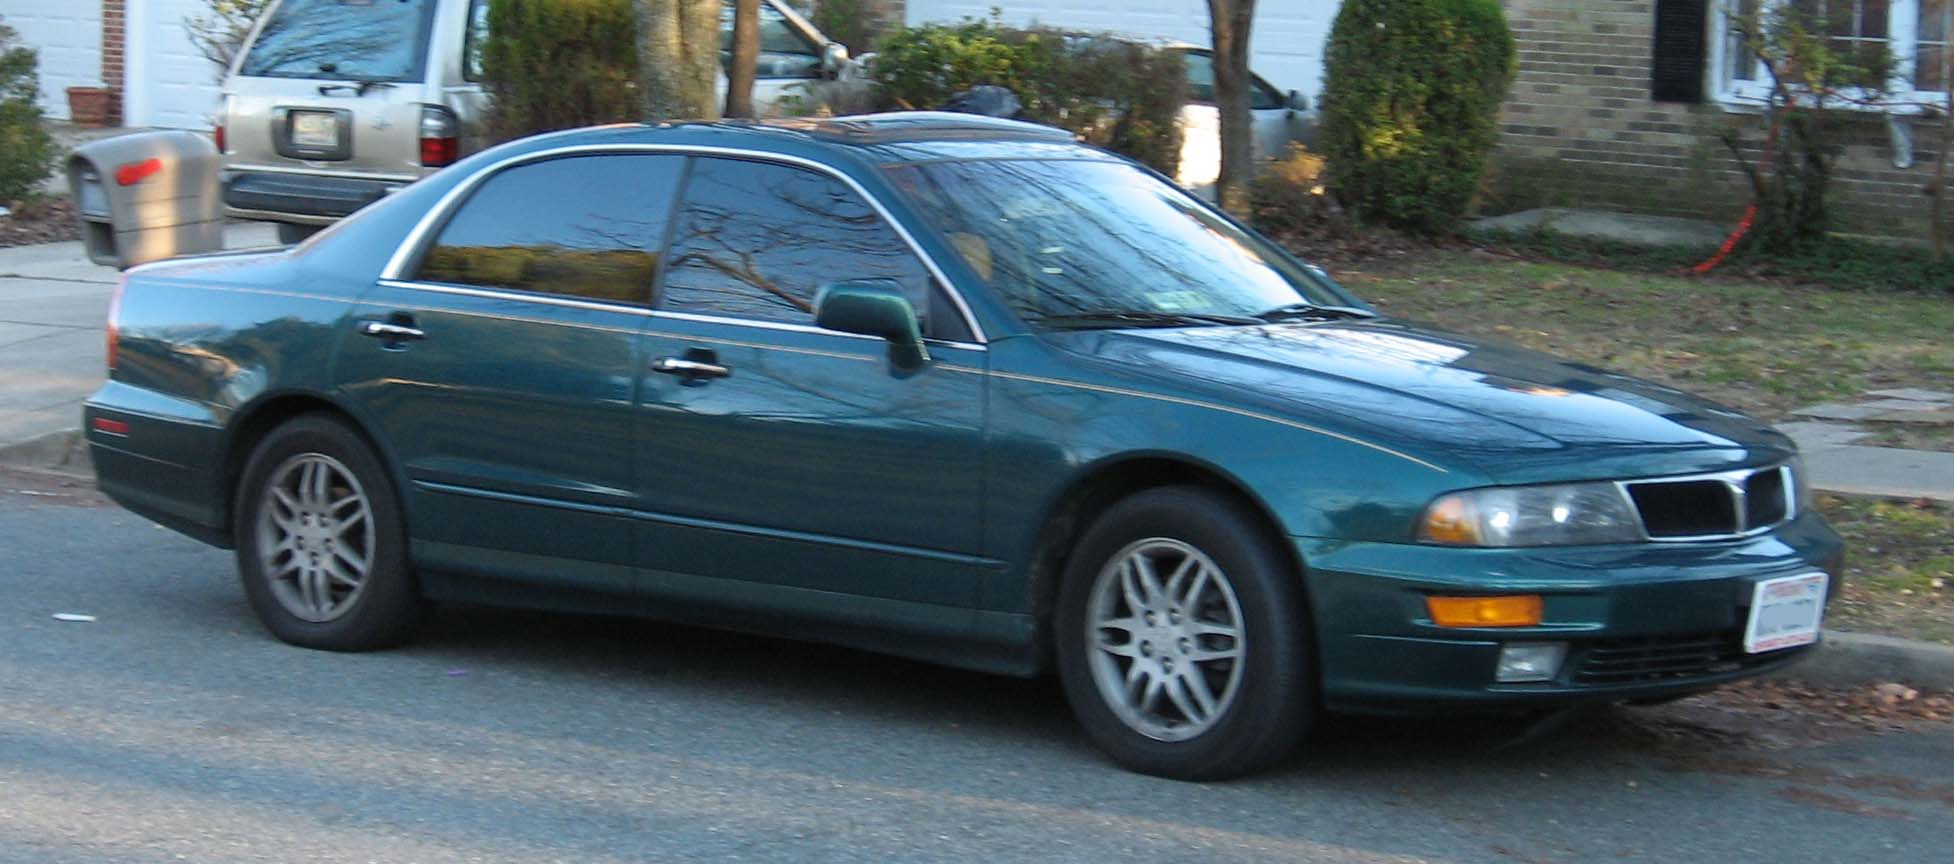 2002 Mitsubishi Diamante ES - Sedan 3.5L V6 auto